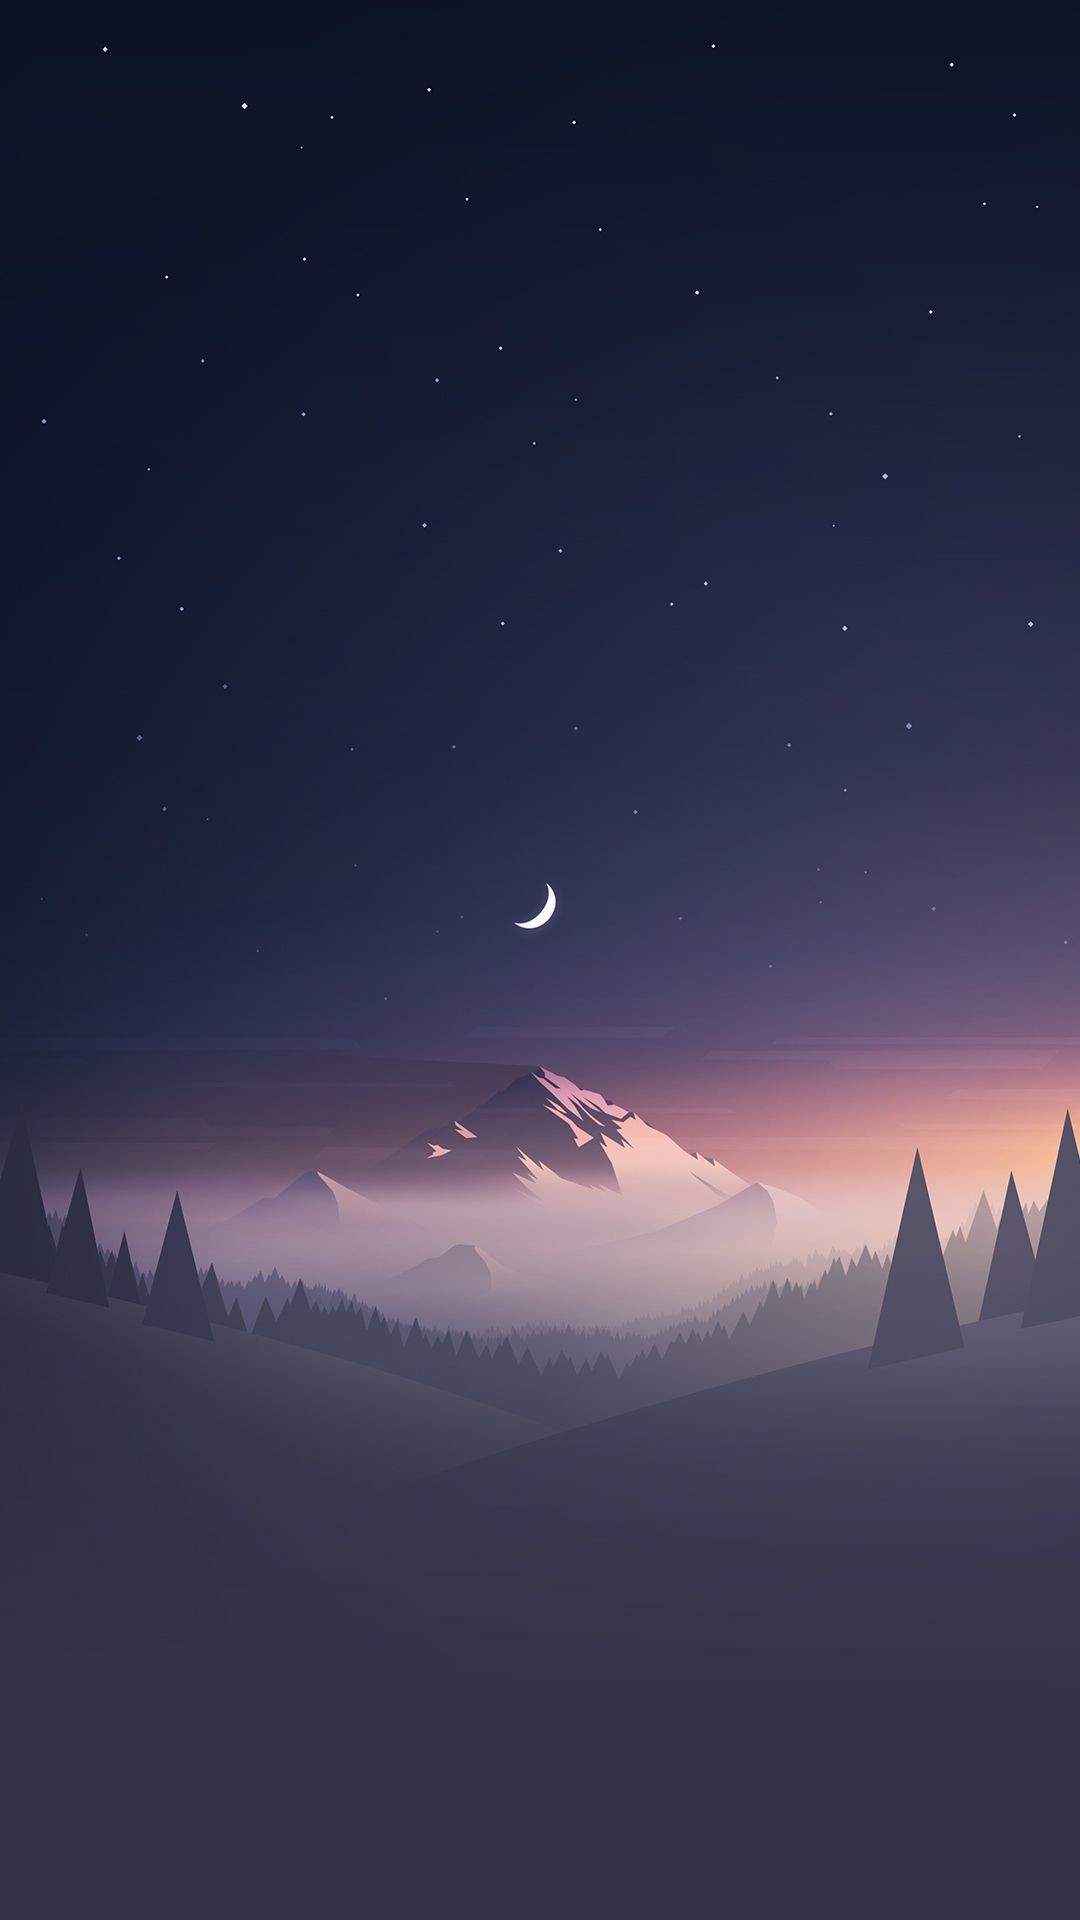 1080x1920 Stars And Moon Winter Mountain Landscape #iPhone #6 #wallpaper